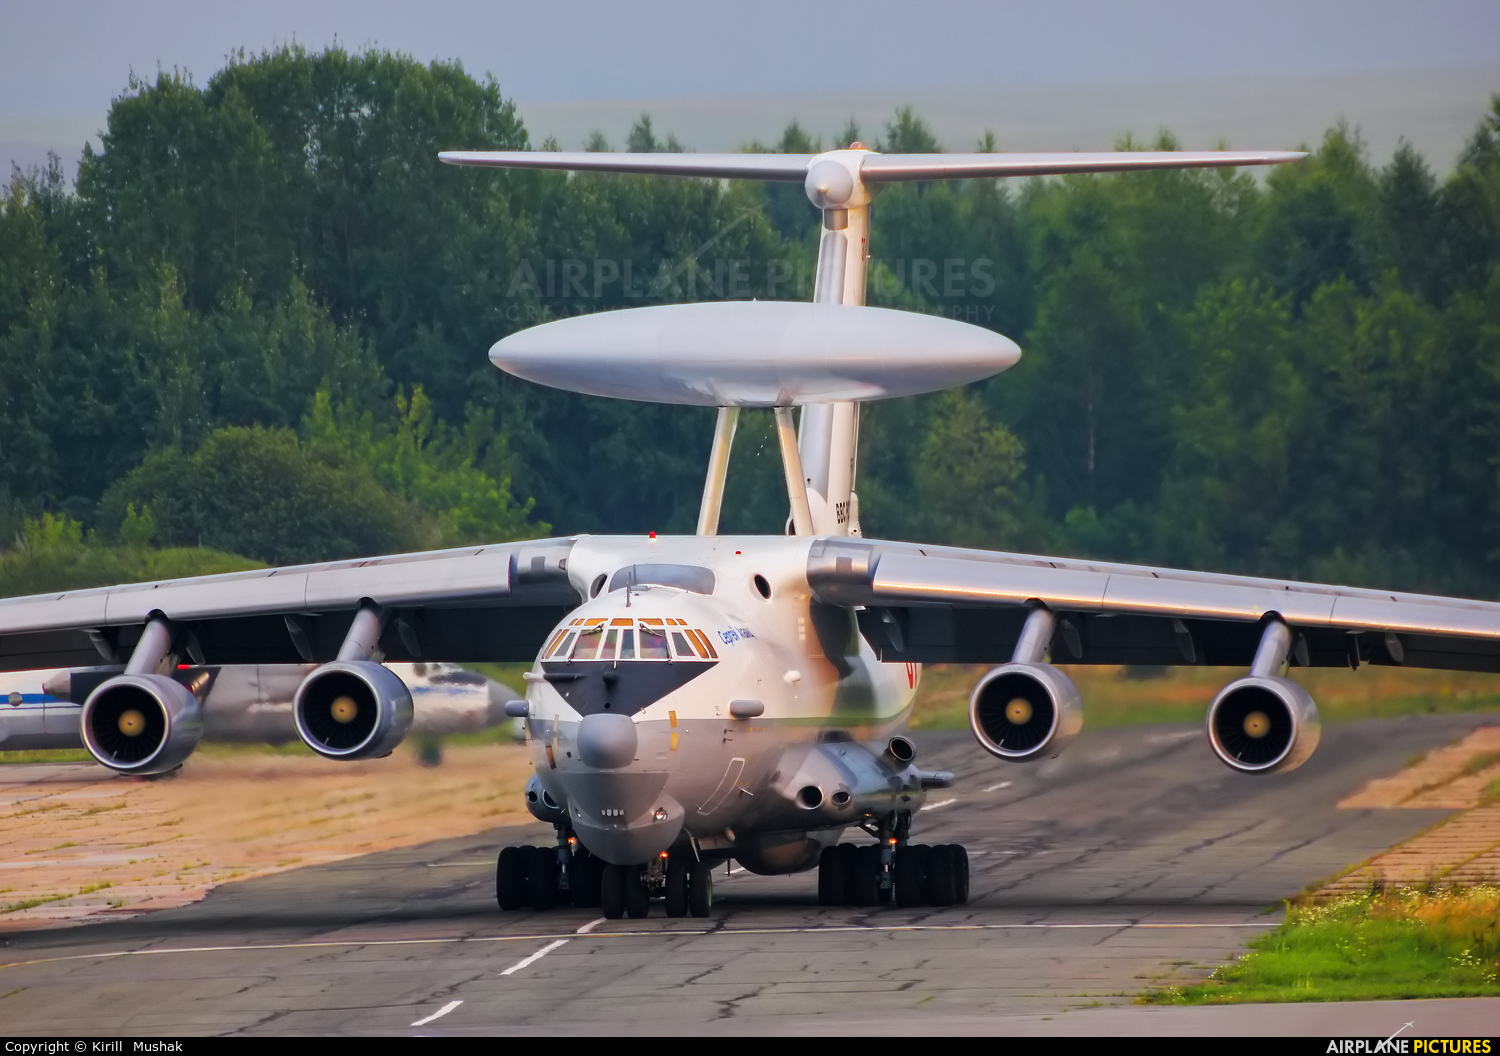 Russia - Air Force RF-93966 aircraft at Undisclosed Location